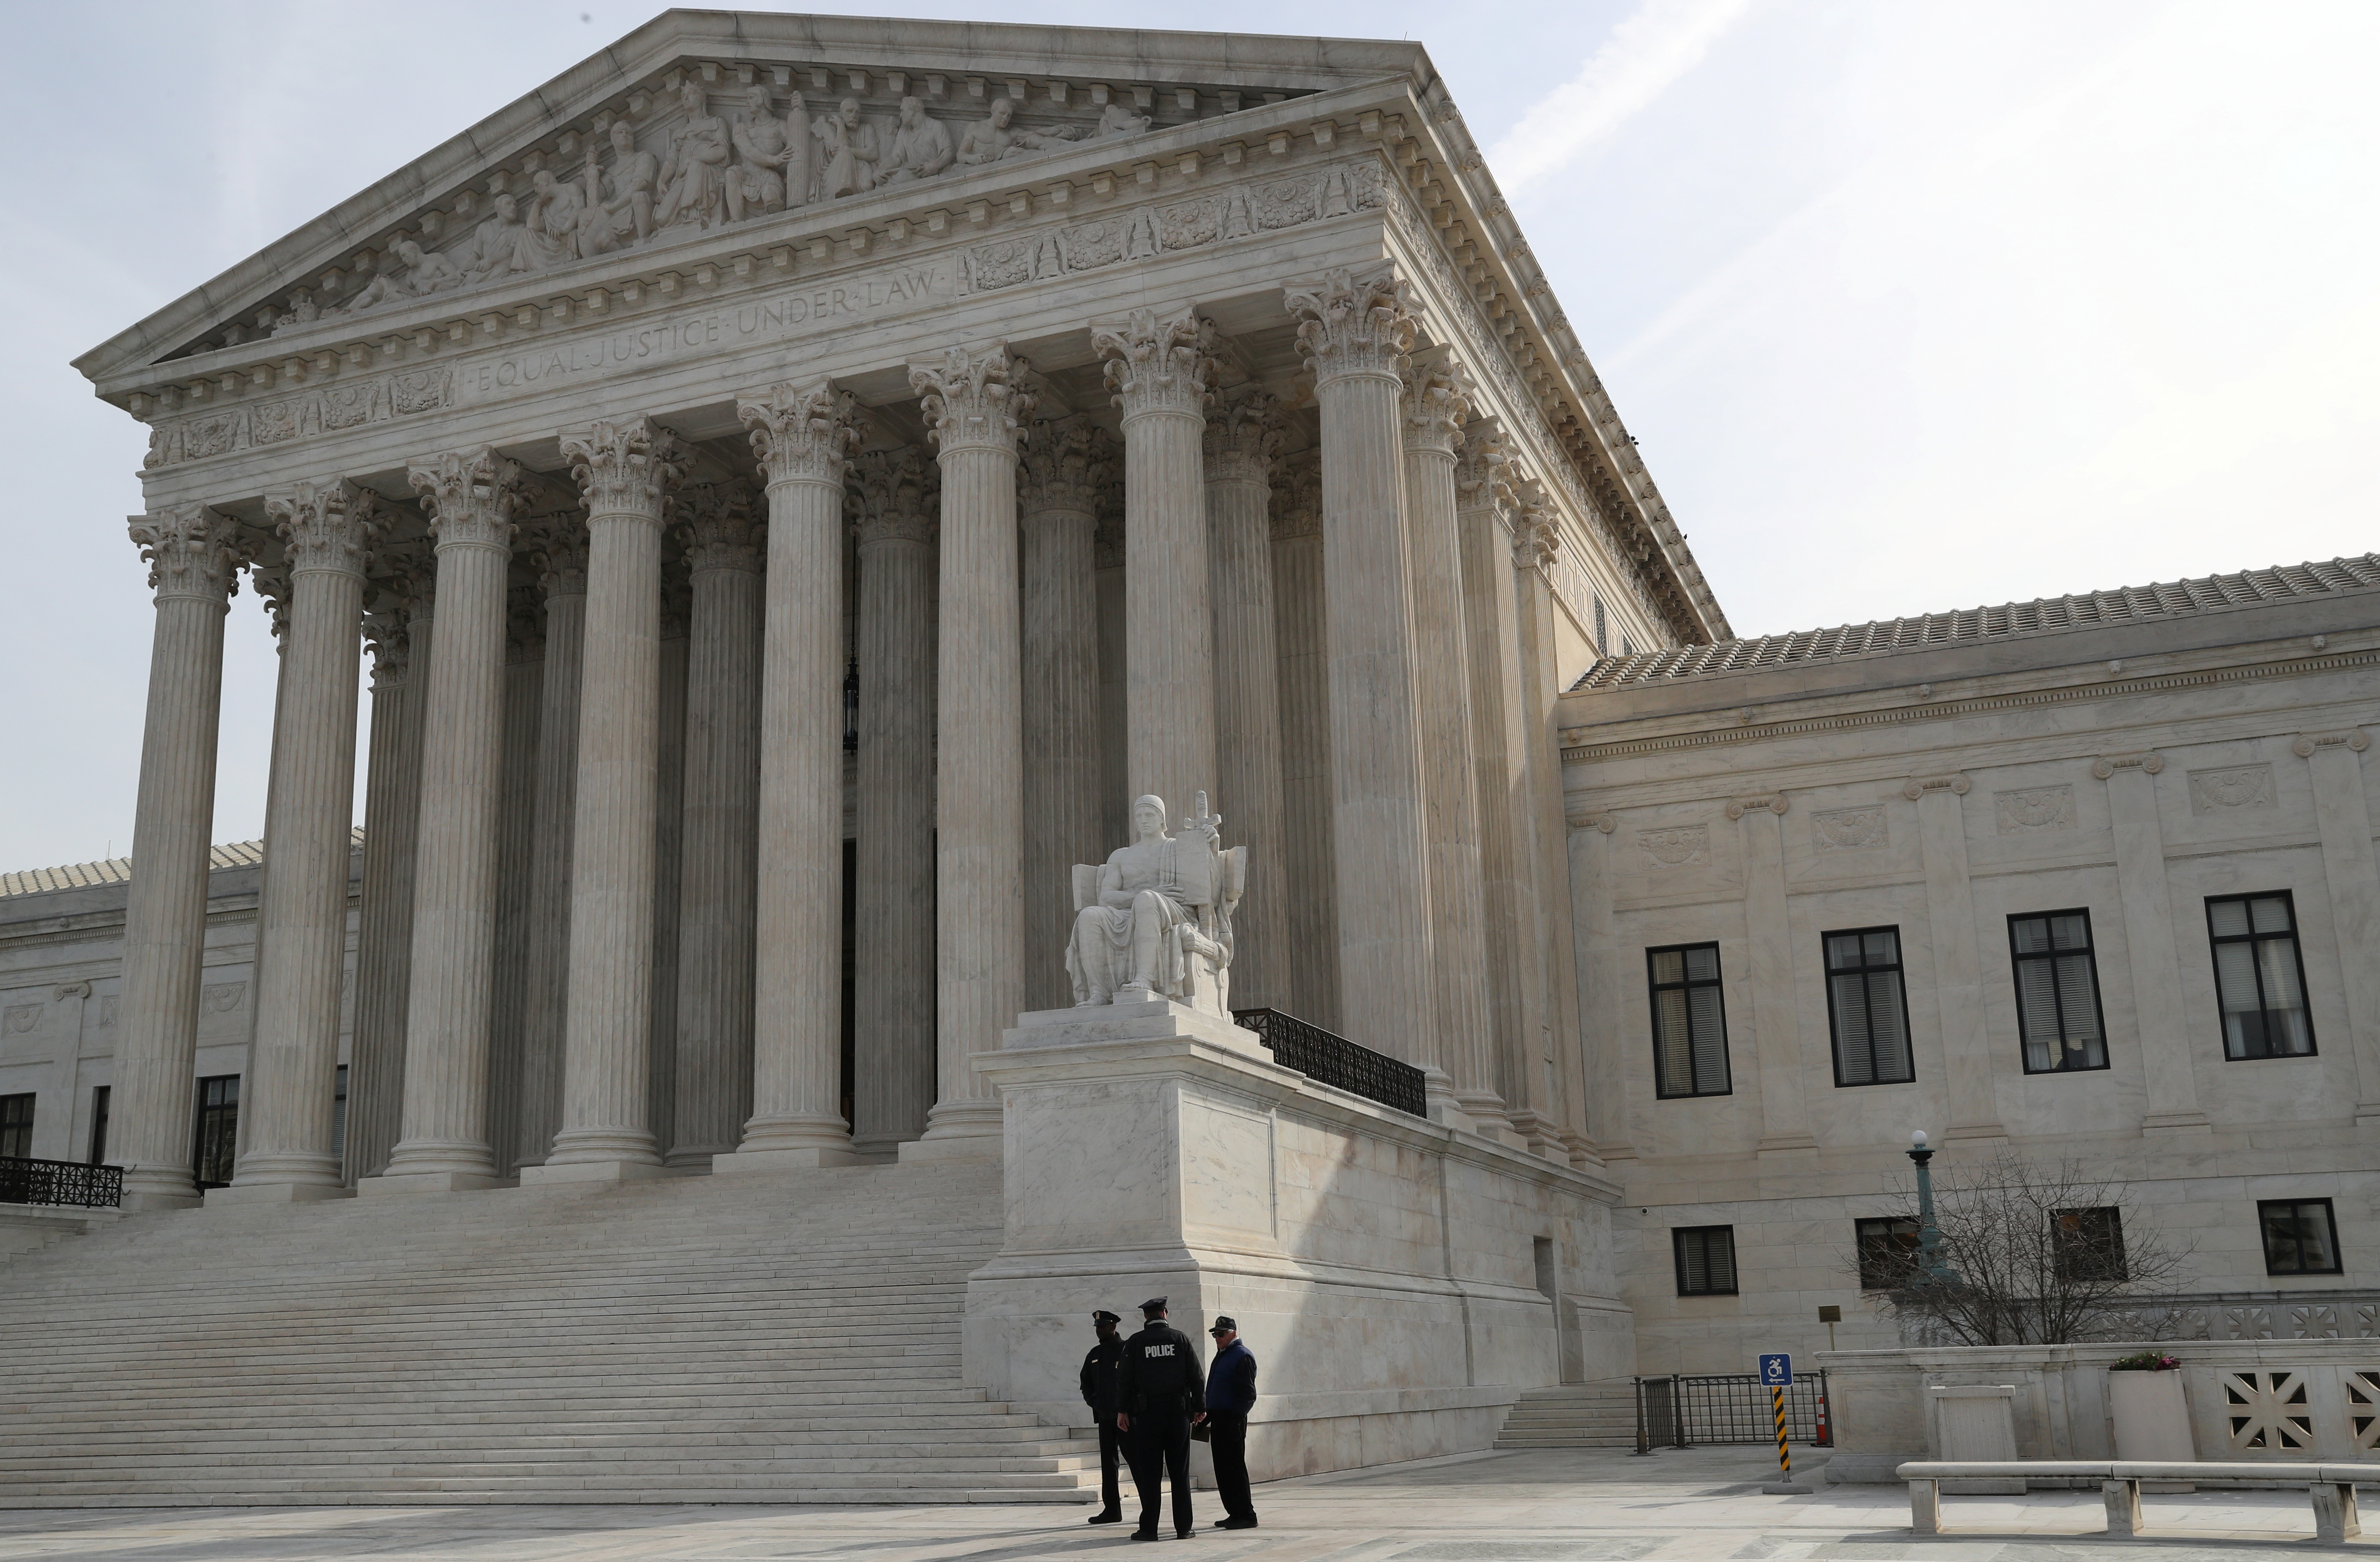 The Supreme Court as seen on March 20, 2019. (Reuters/Leah Millis)